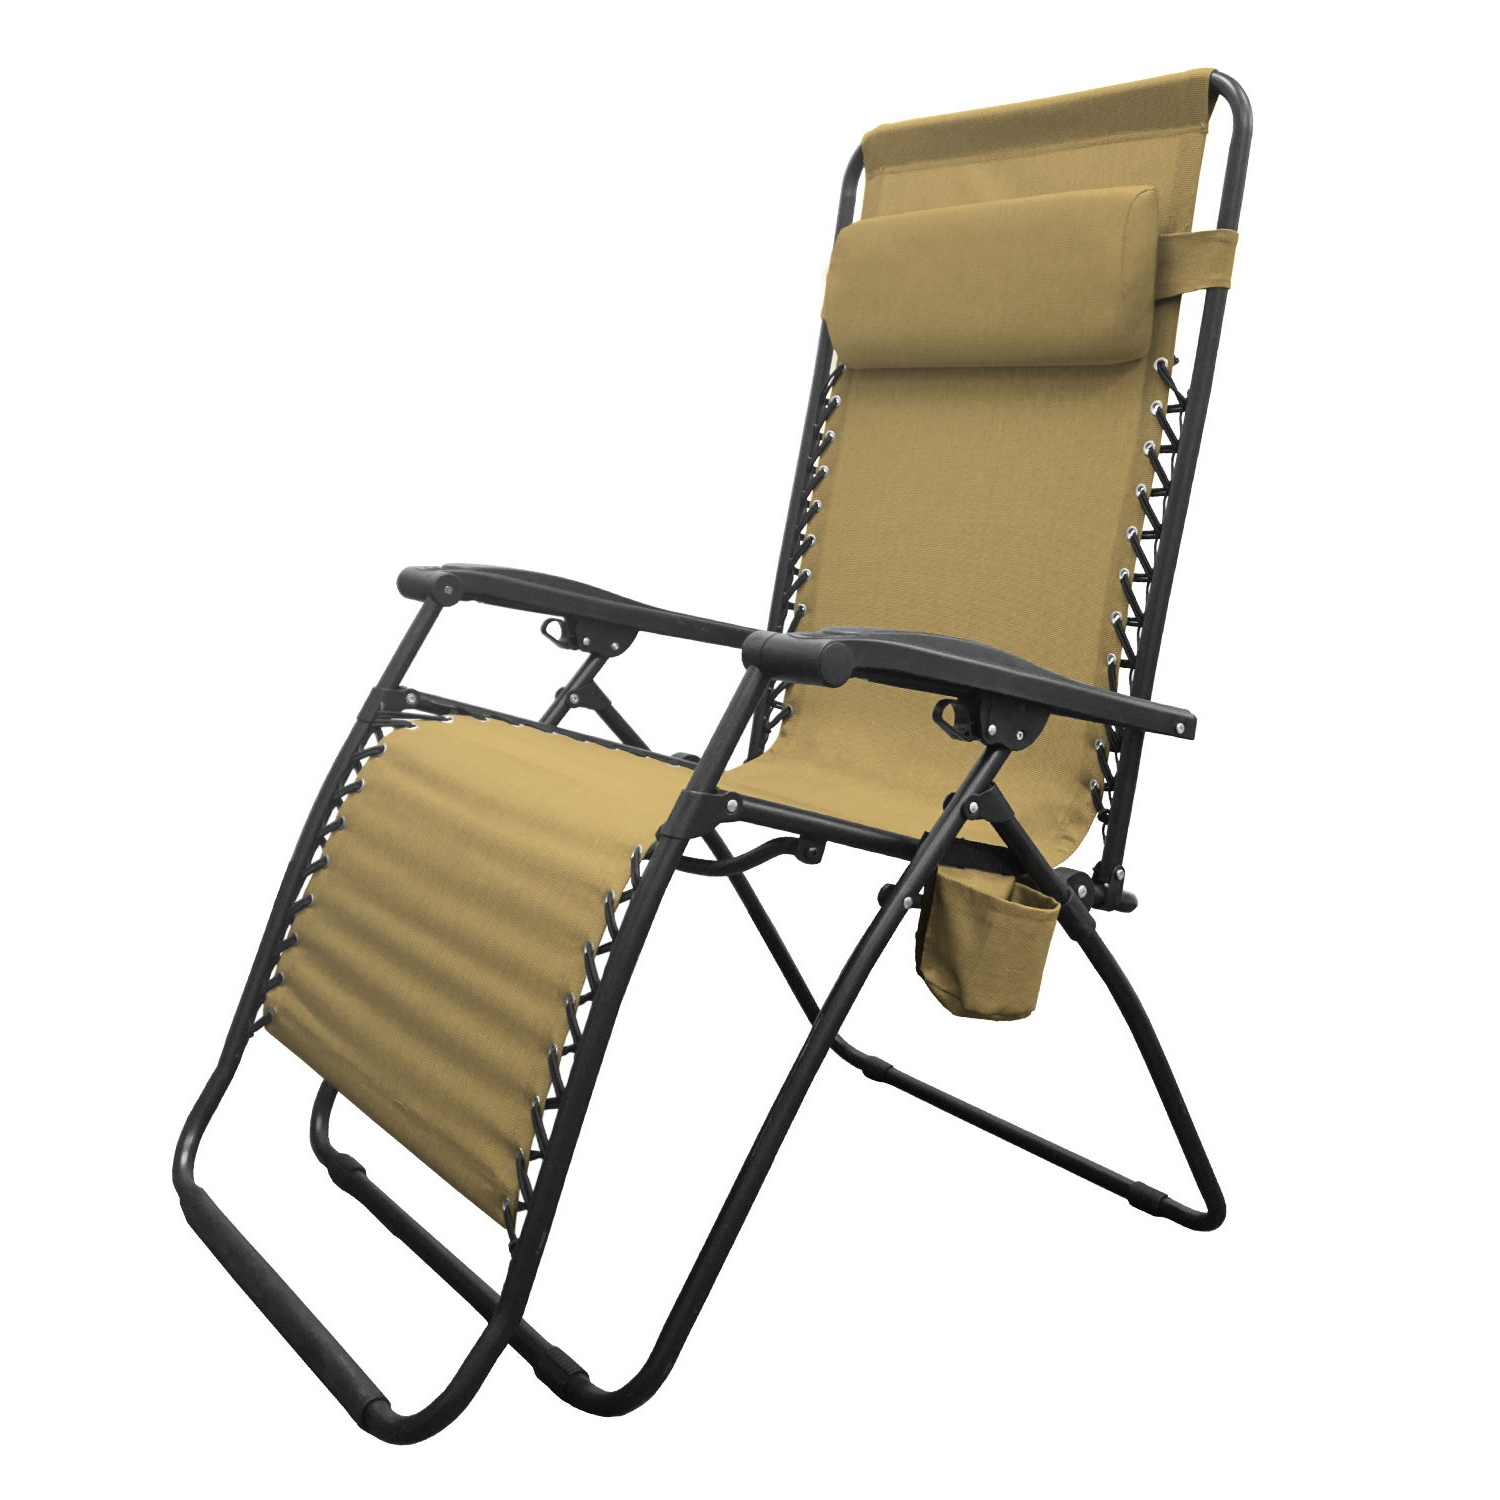 Most Up To Date Infinity Big Boy Zero Gravity Chair Inside Caravan Sportsbeige Zero Gravity Chairs (View 11 of 25)